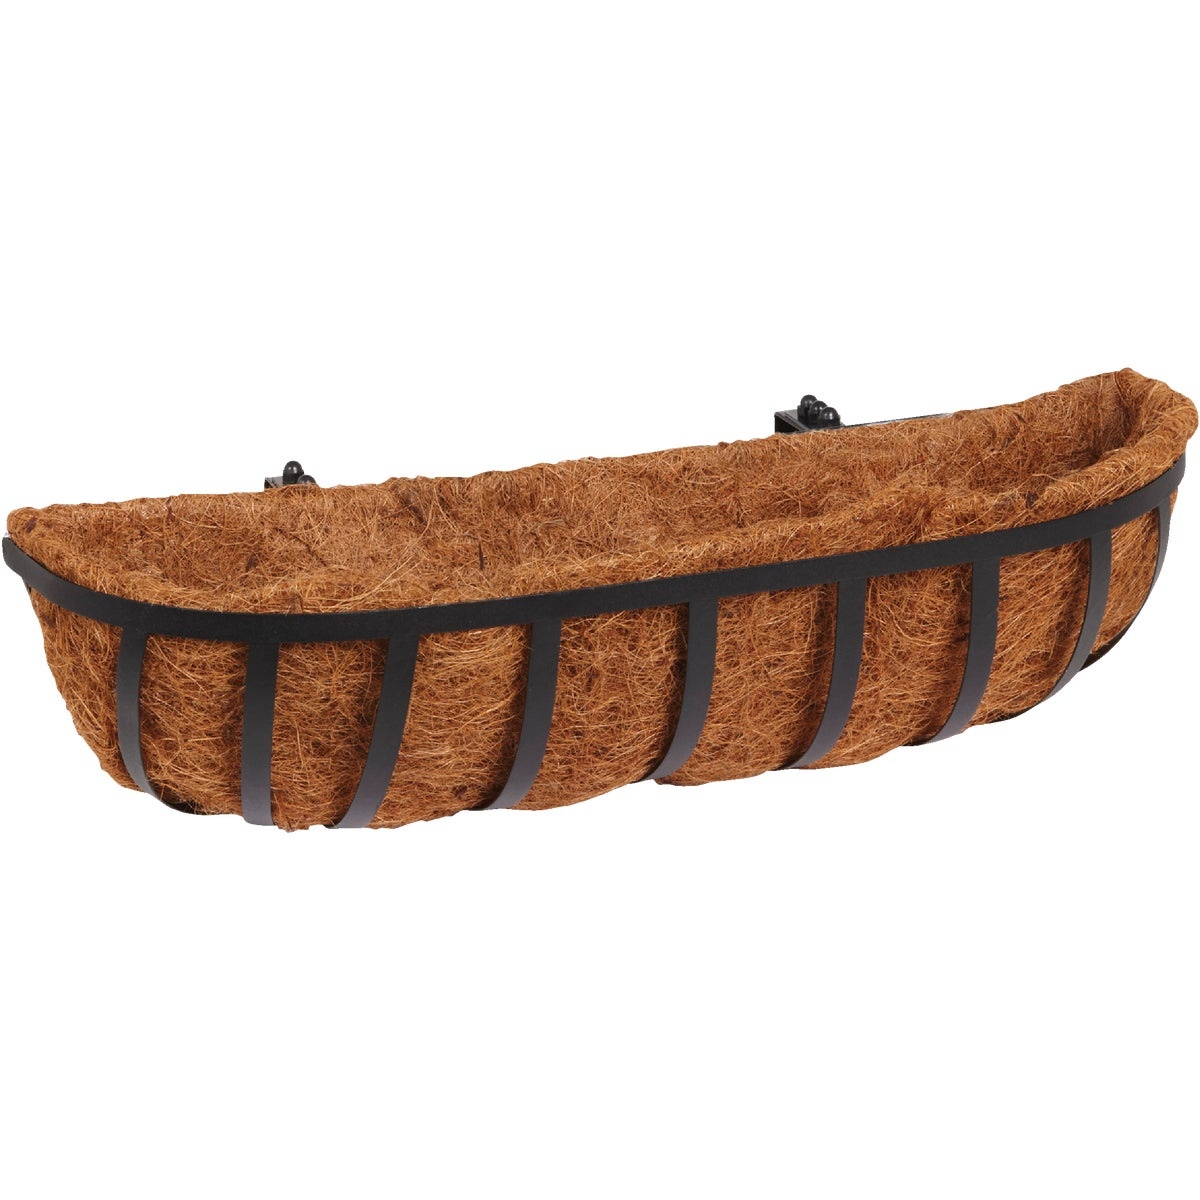 "24"" HORSE TROUGH PLANTER - HTR24-B by Woodstream Corp"